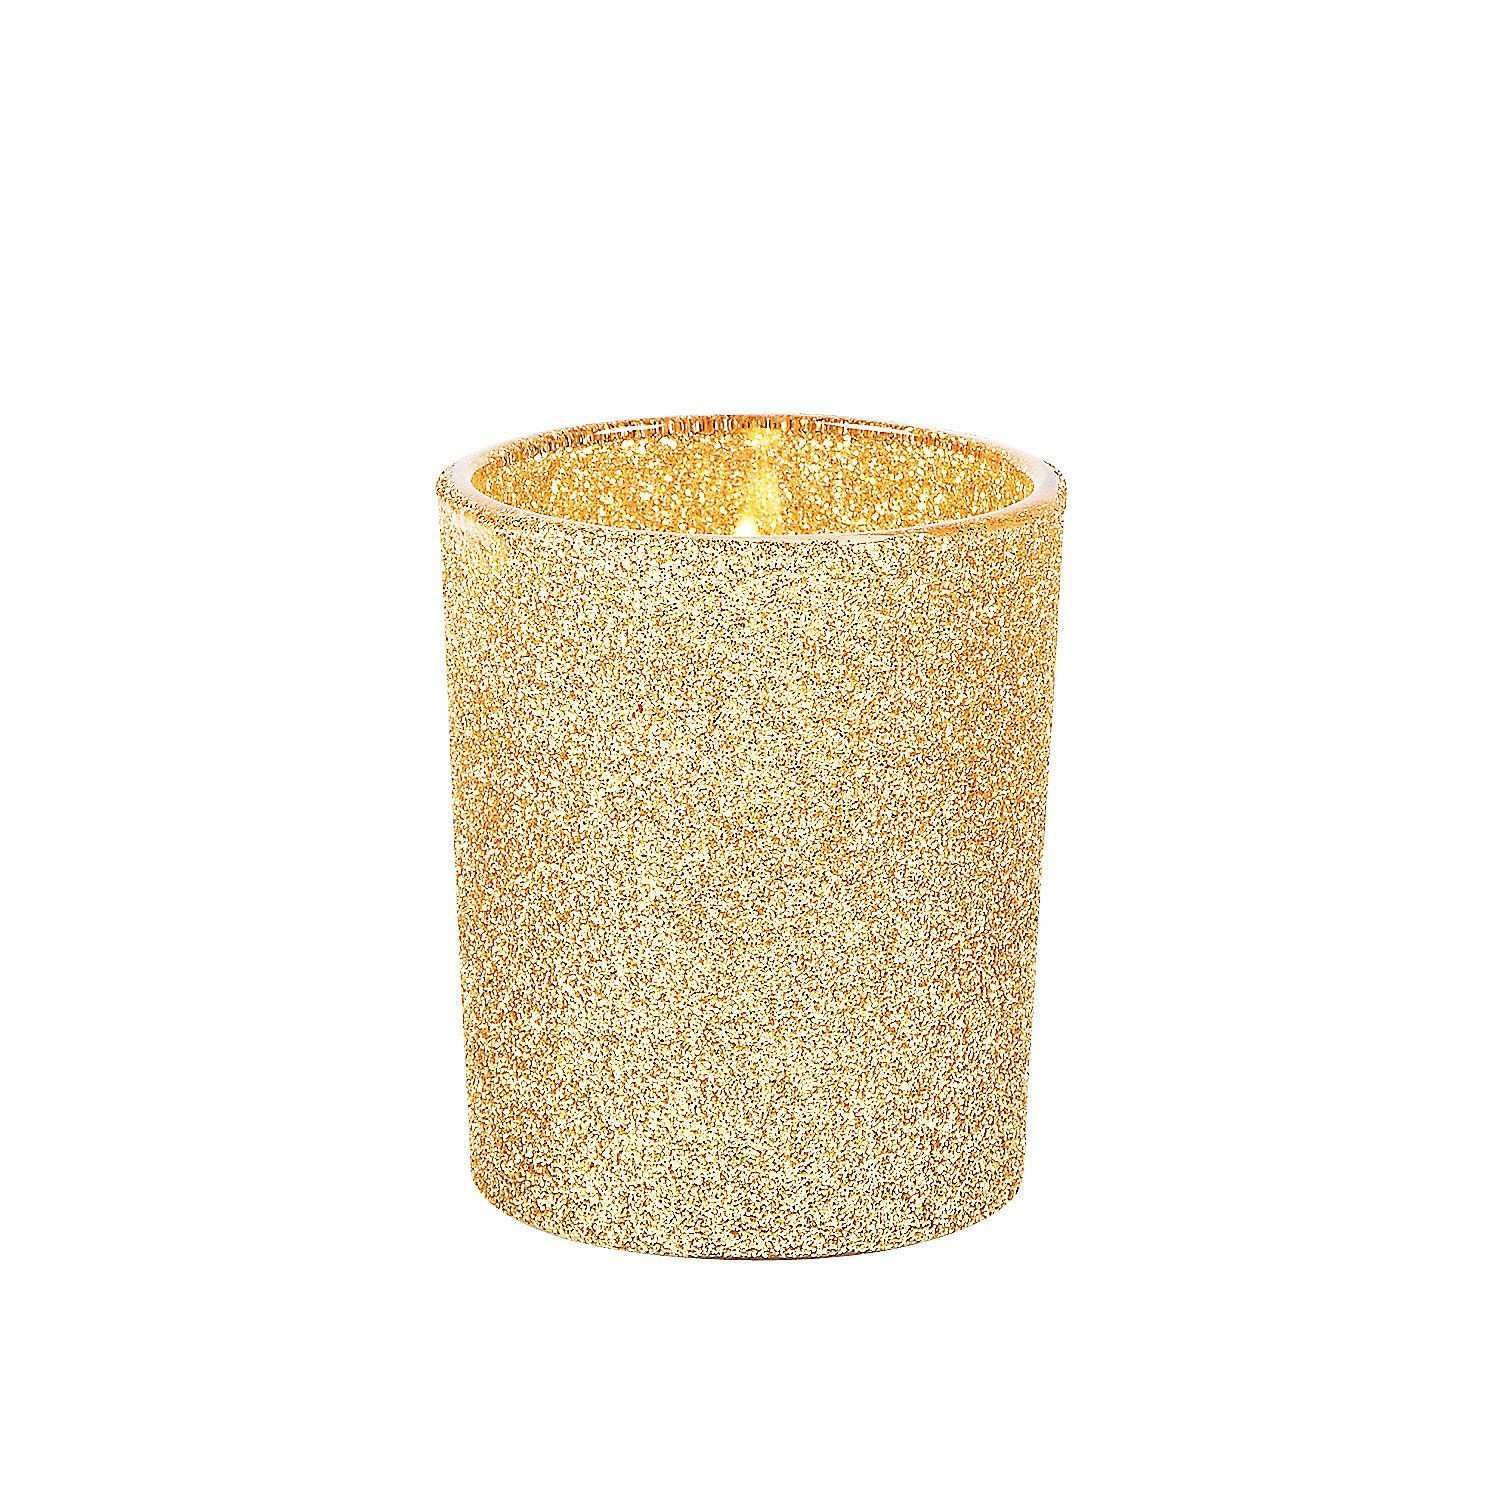 gold glitter vase of gold mercury glass vases awesome inspiration gold votive candles throughout gold mercury glass vases awesome inspiration gold votive candles with gold glitter votive holders